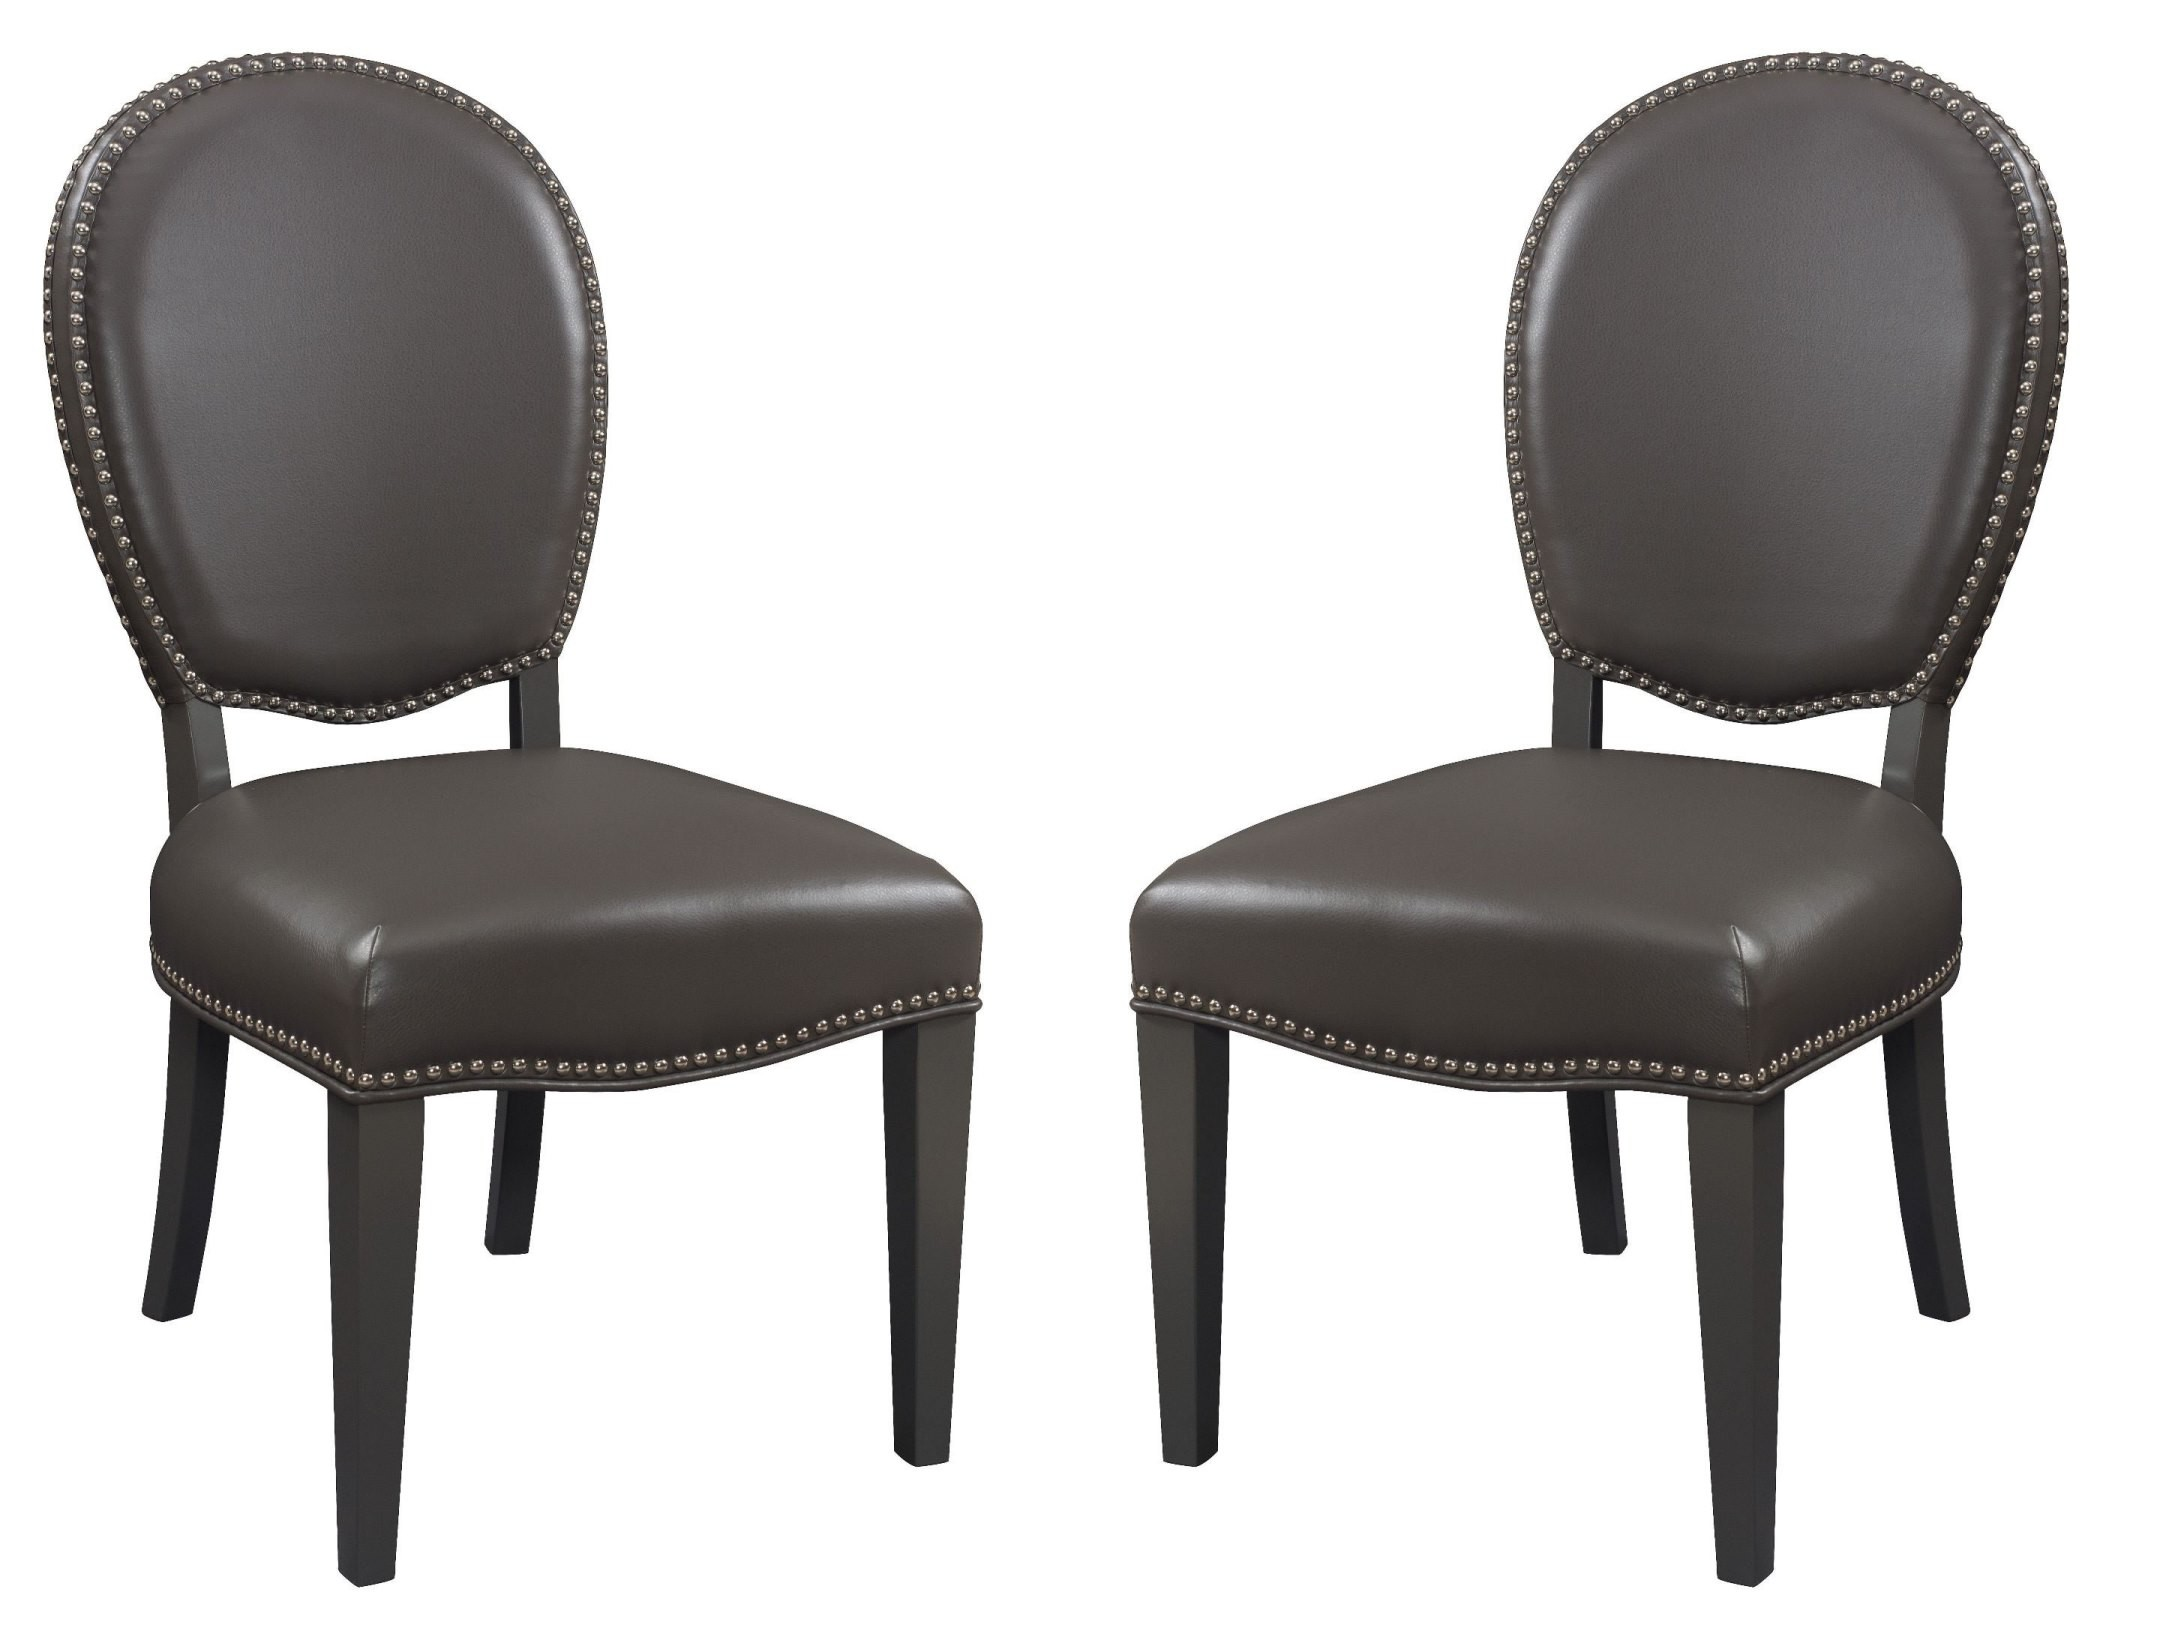 gray accent chairs set of 2 wicker armchair uk keats grey dining chair from coast to